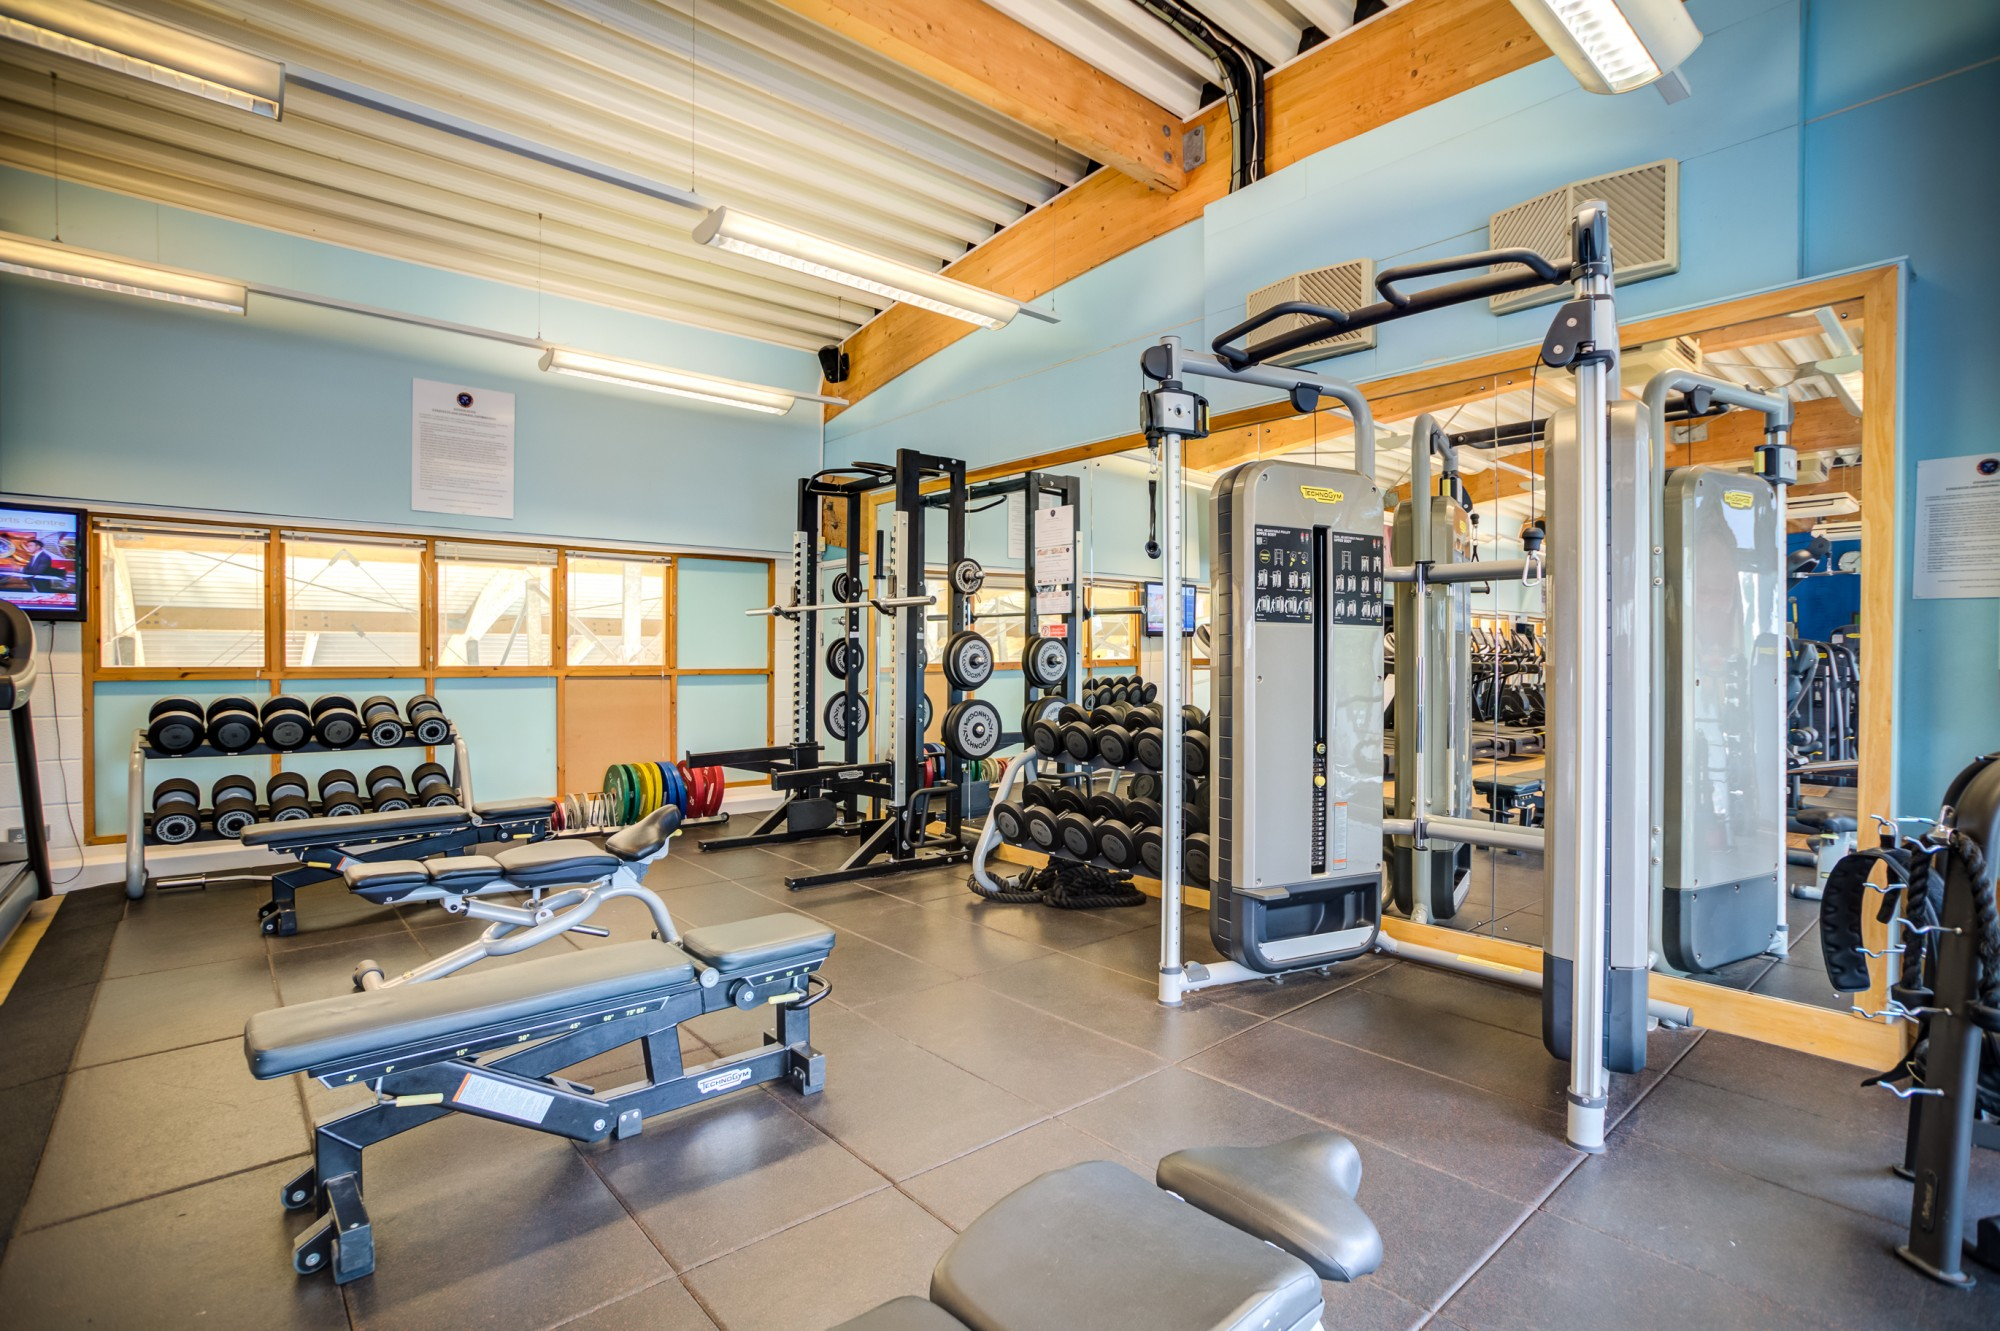 Explore our newly expanded free-weights area